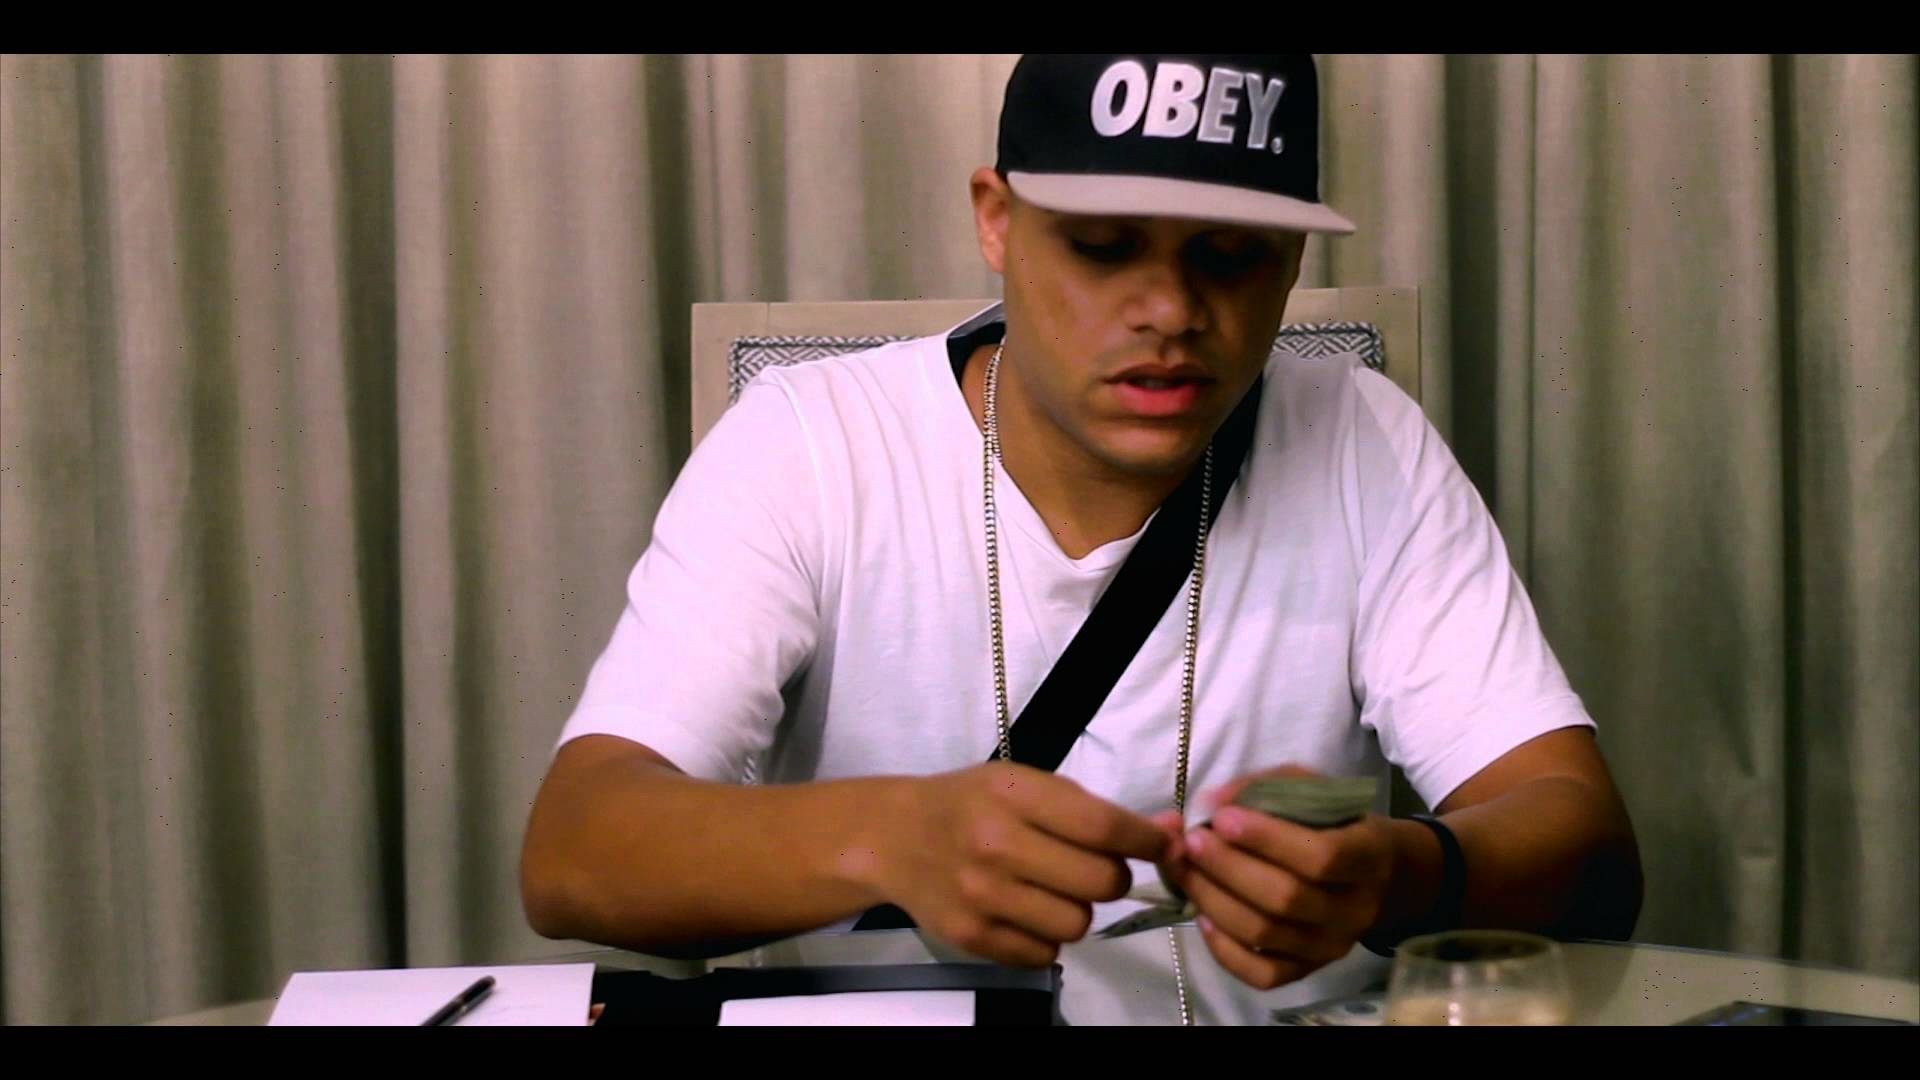 jowell ft khey me quiere me odia - Jowell Ft. Khey - Me Quiere Me Odia (Official Video)